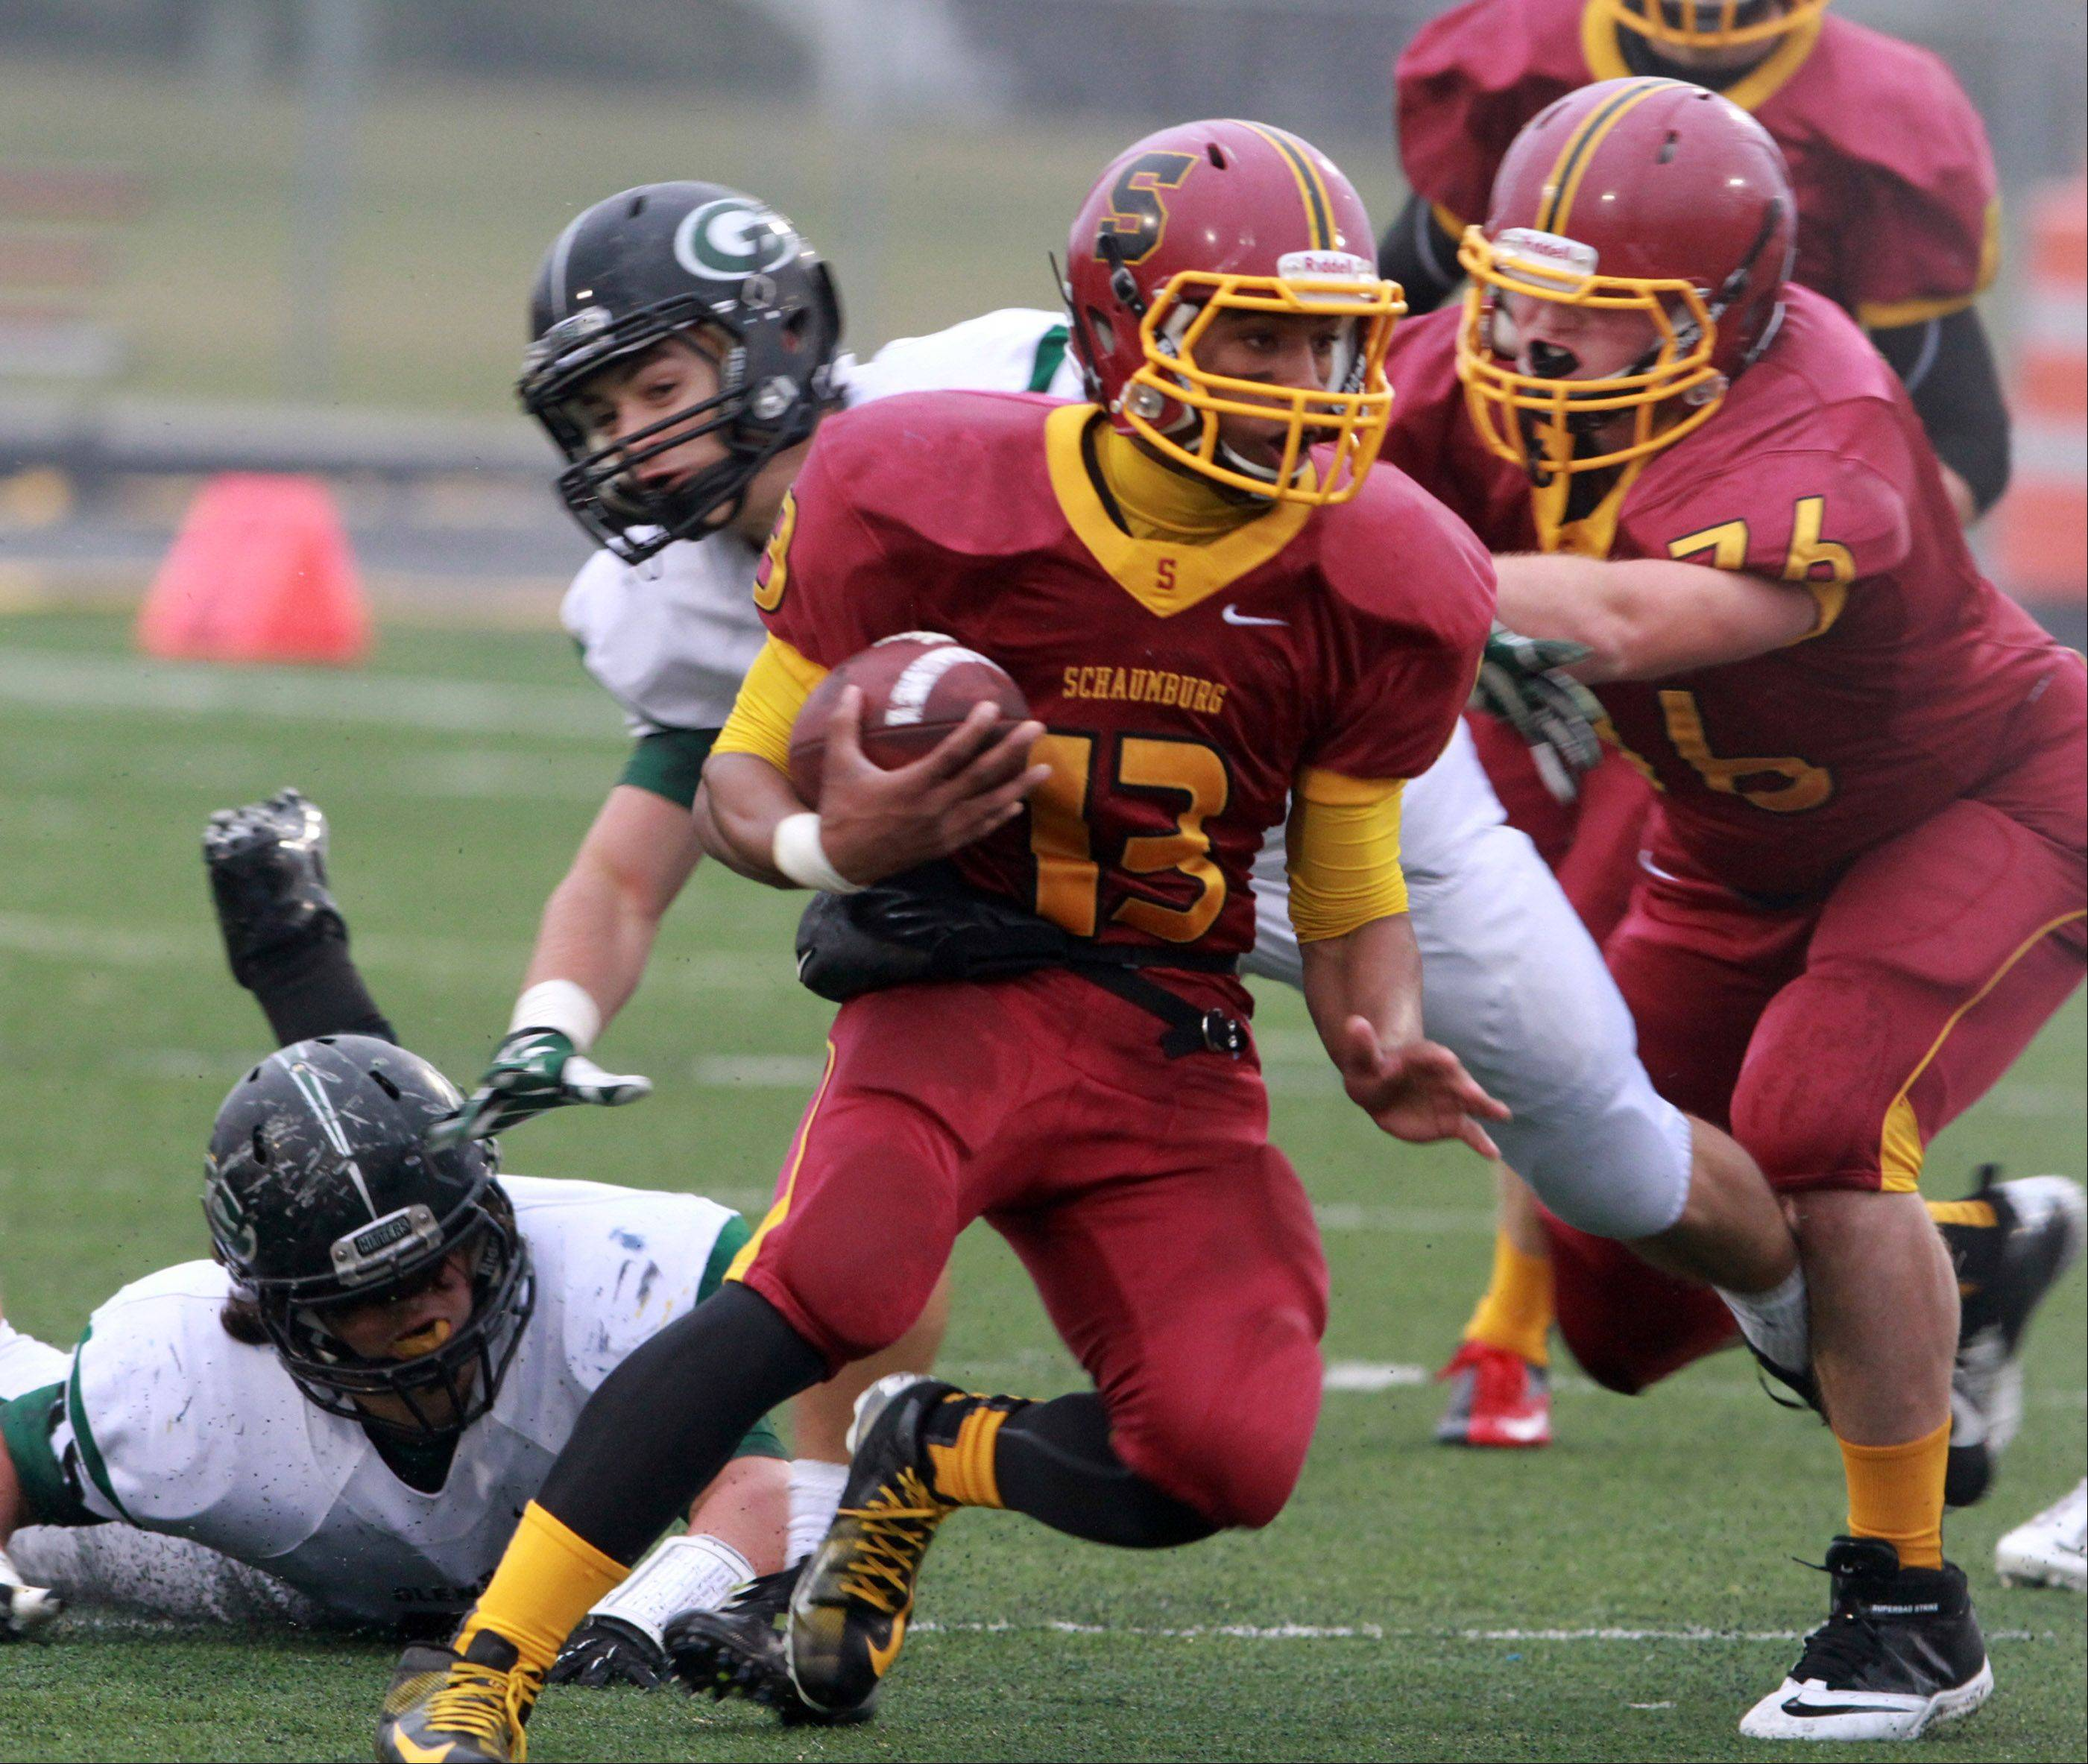 Schaumburg�s Stacey Smith will take his game to Western Illinois, where he�s projected as a wideout and/or return specialist.